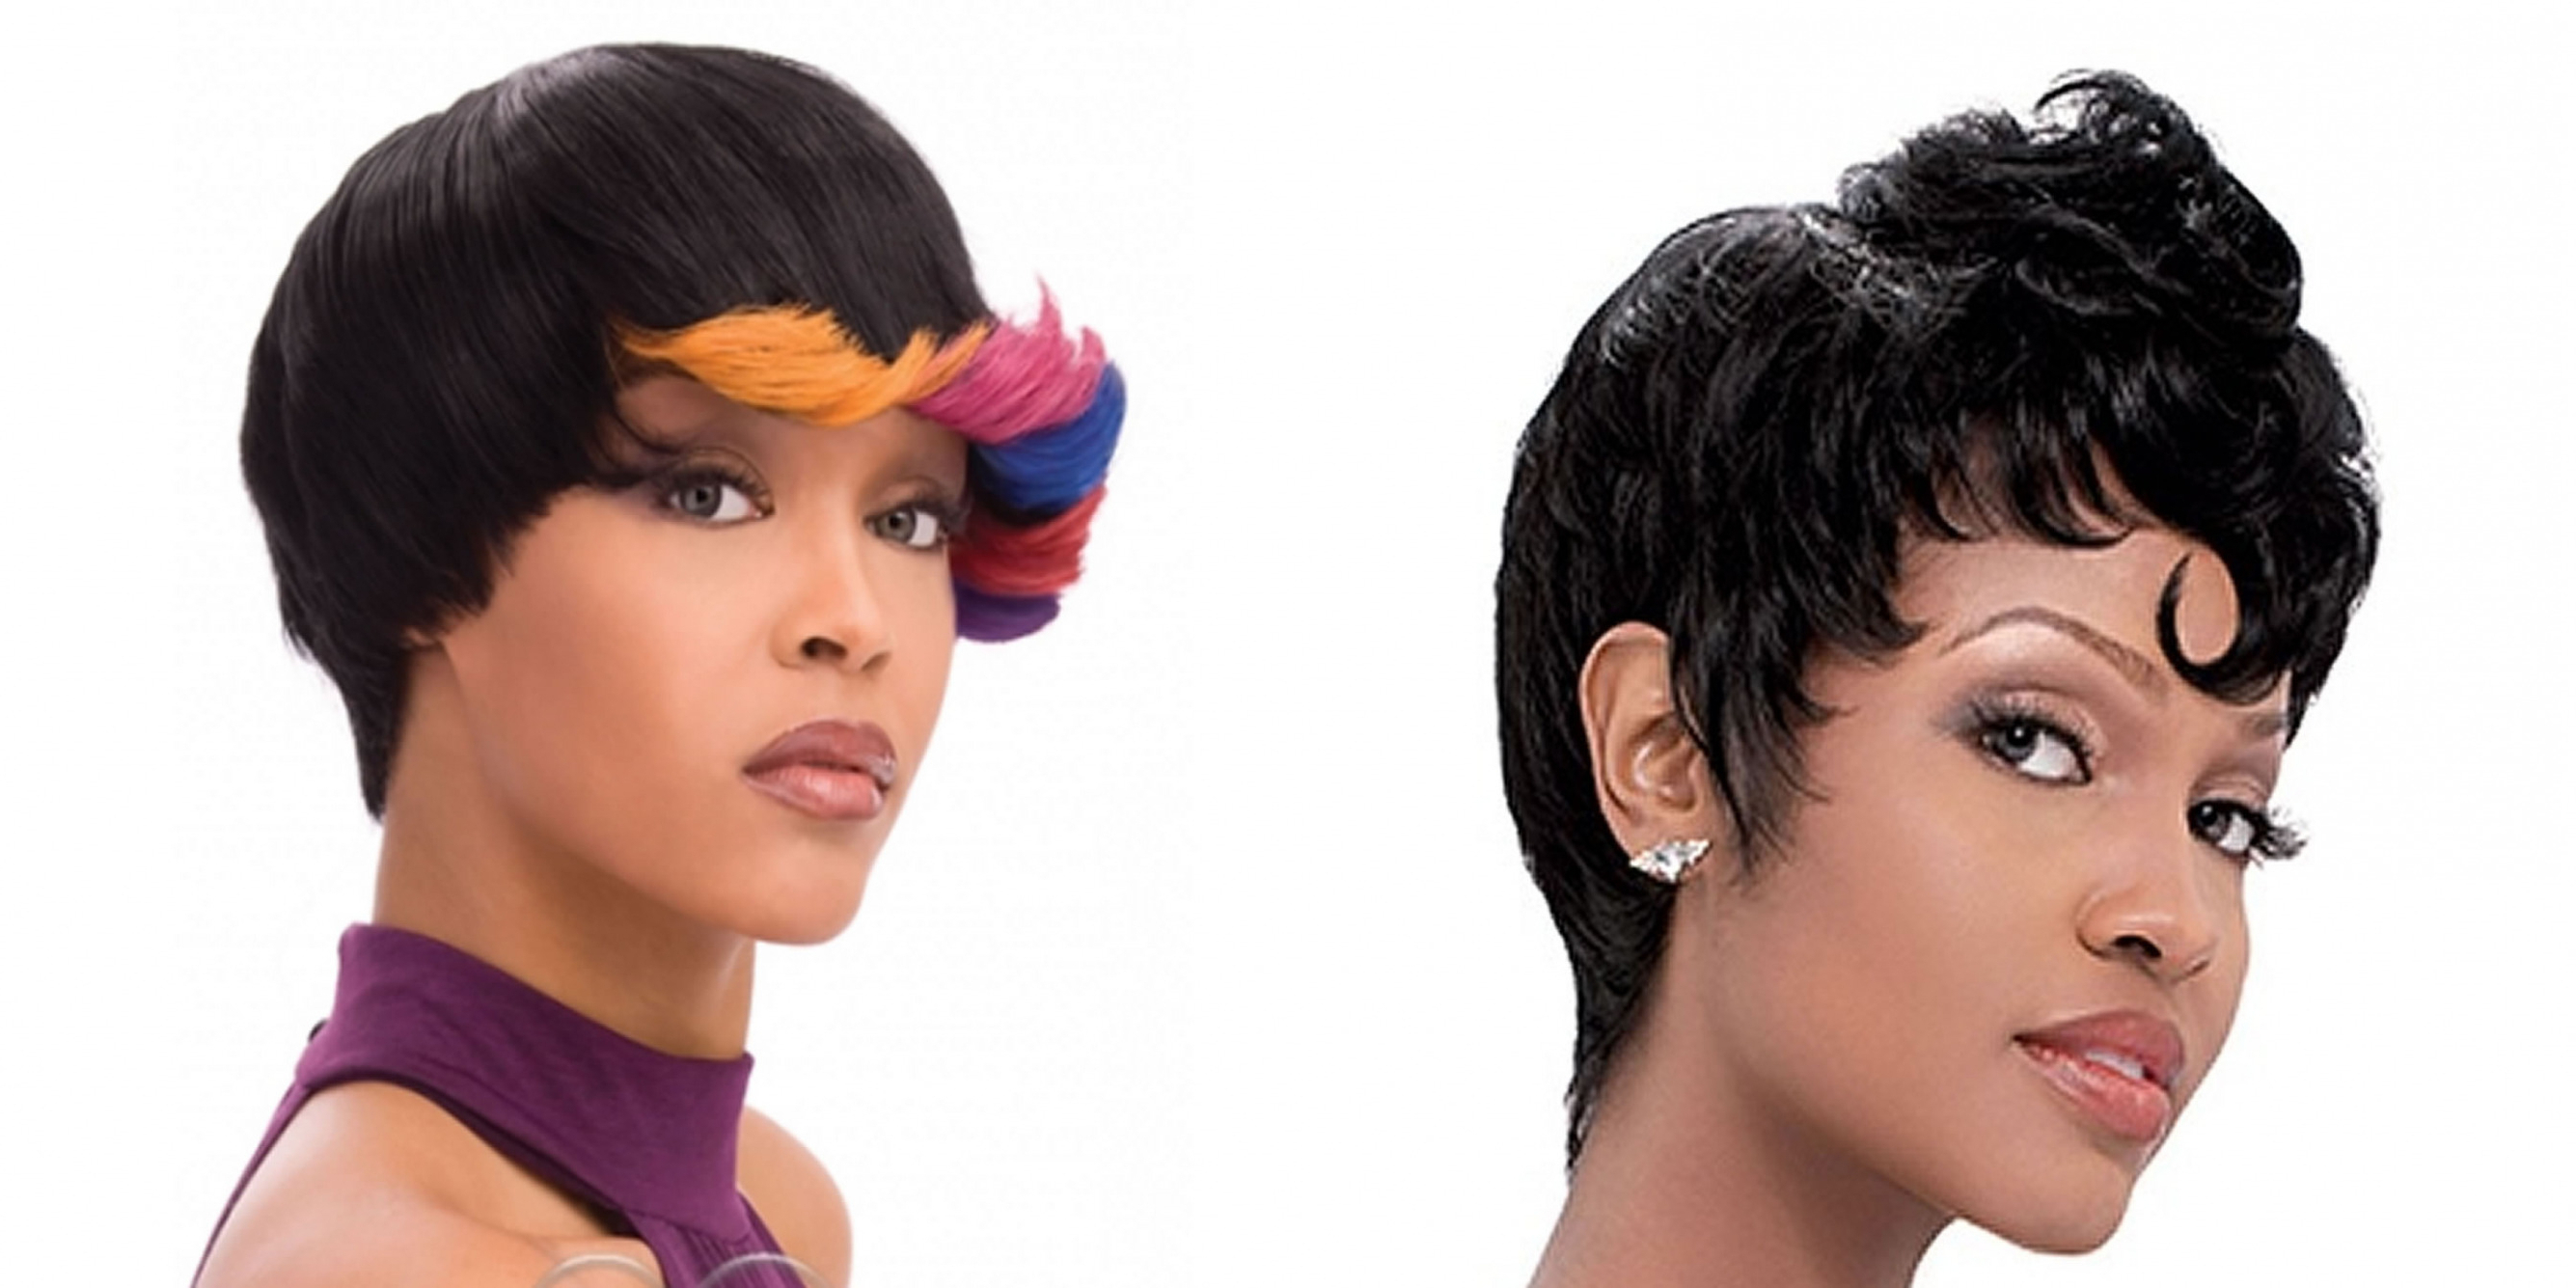 Pixie Hairstyles For Black Women – 60 Cool Short Haircuts For 2017 With Black Woman Short Haircuts (View 12 of 25)